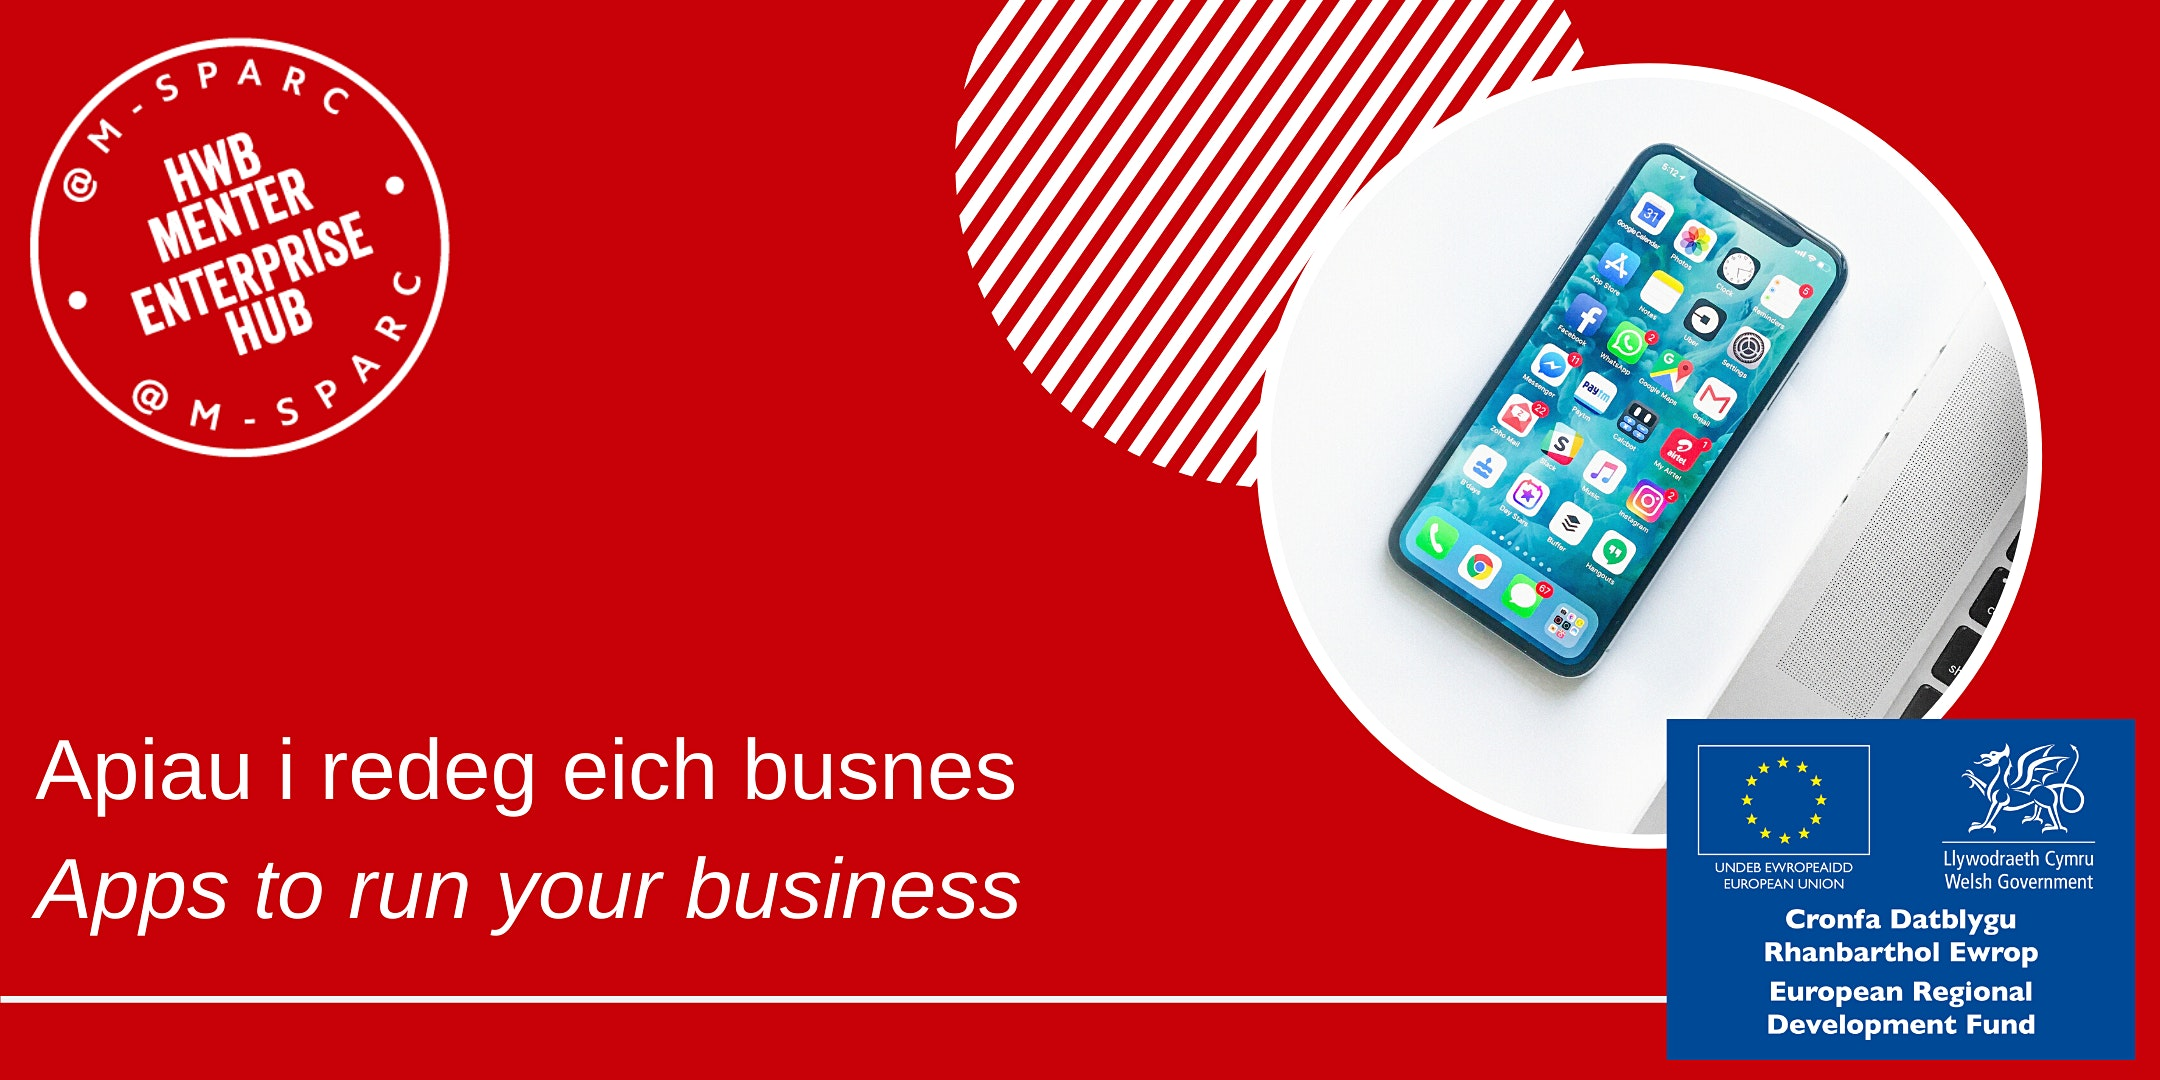 Covid-19:  Apiau  i redeg eich busnes /  Apps  to run your business